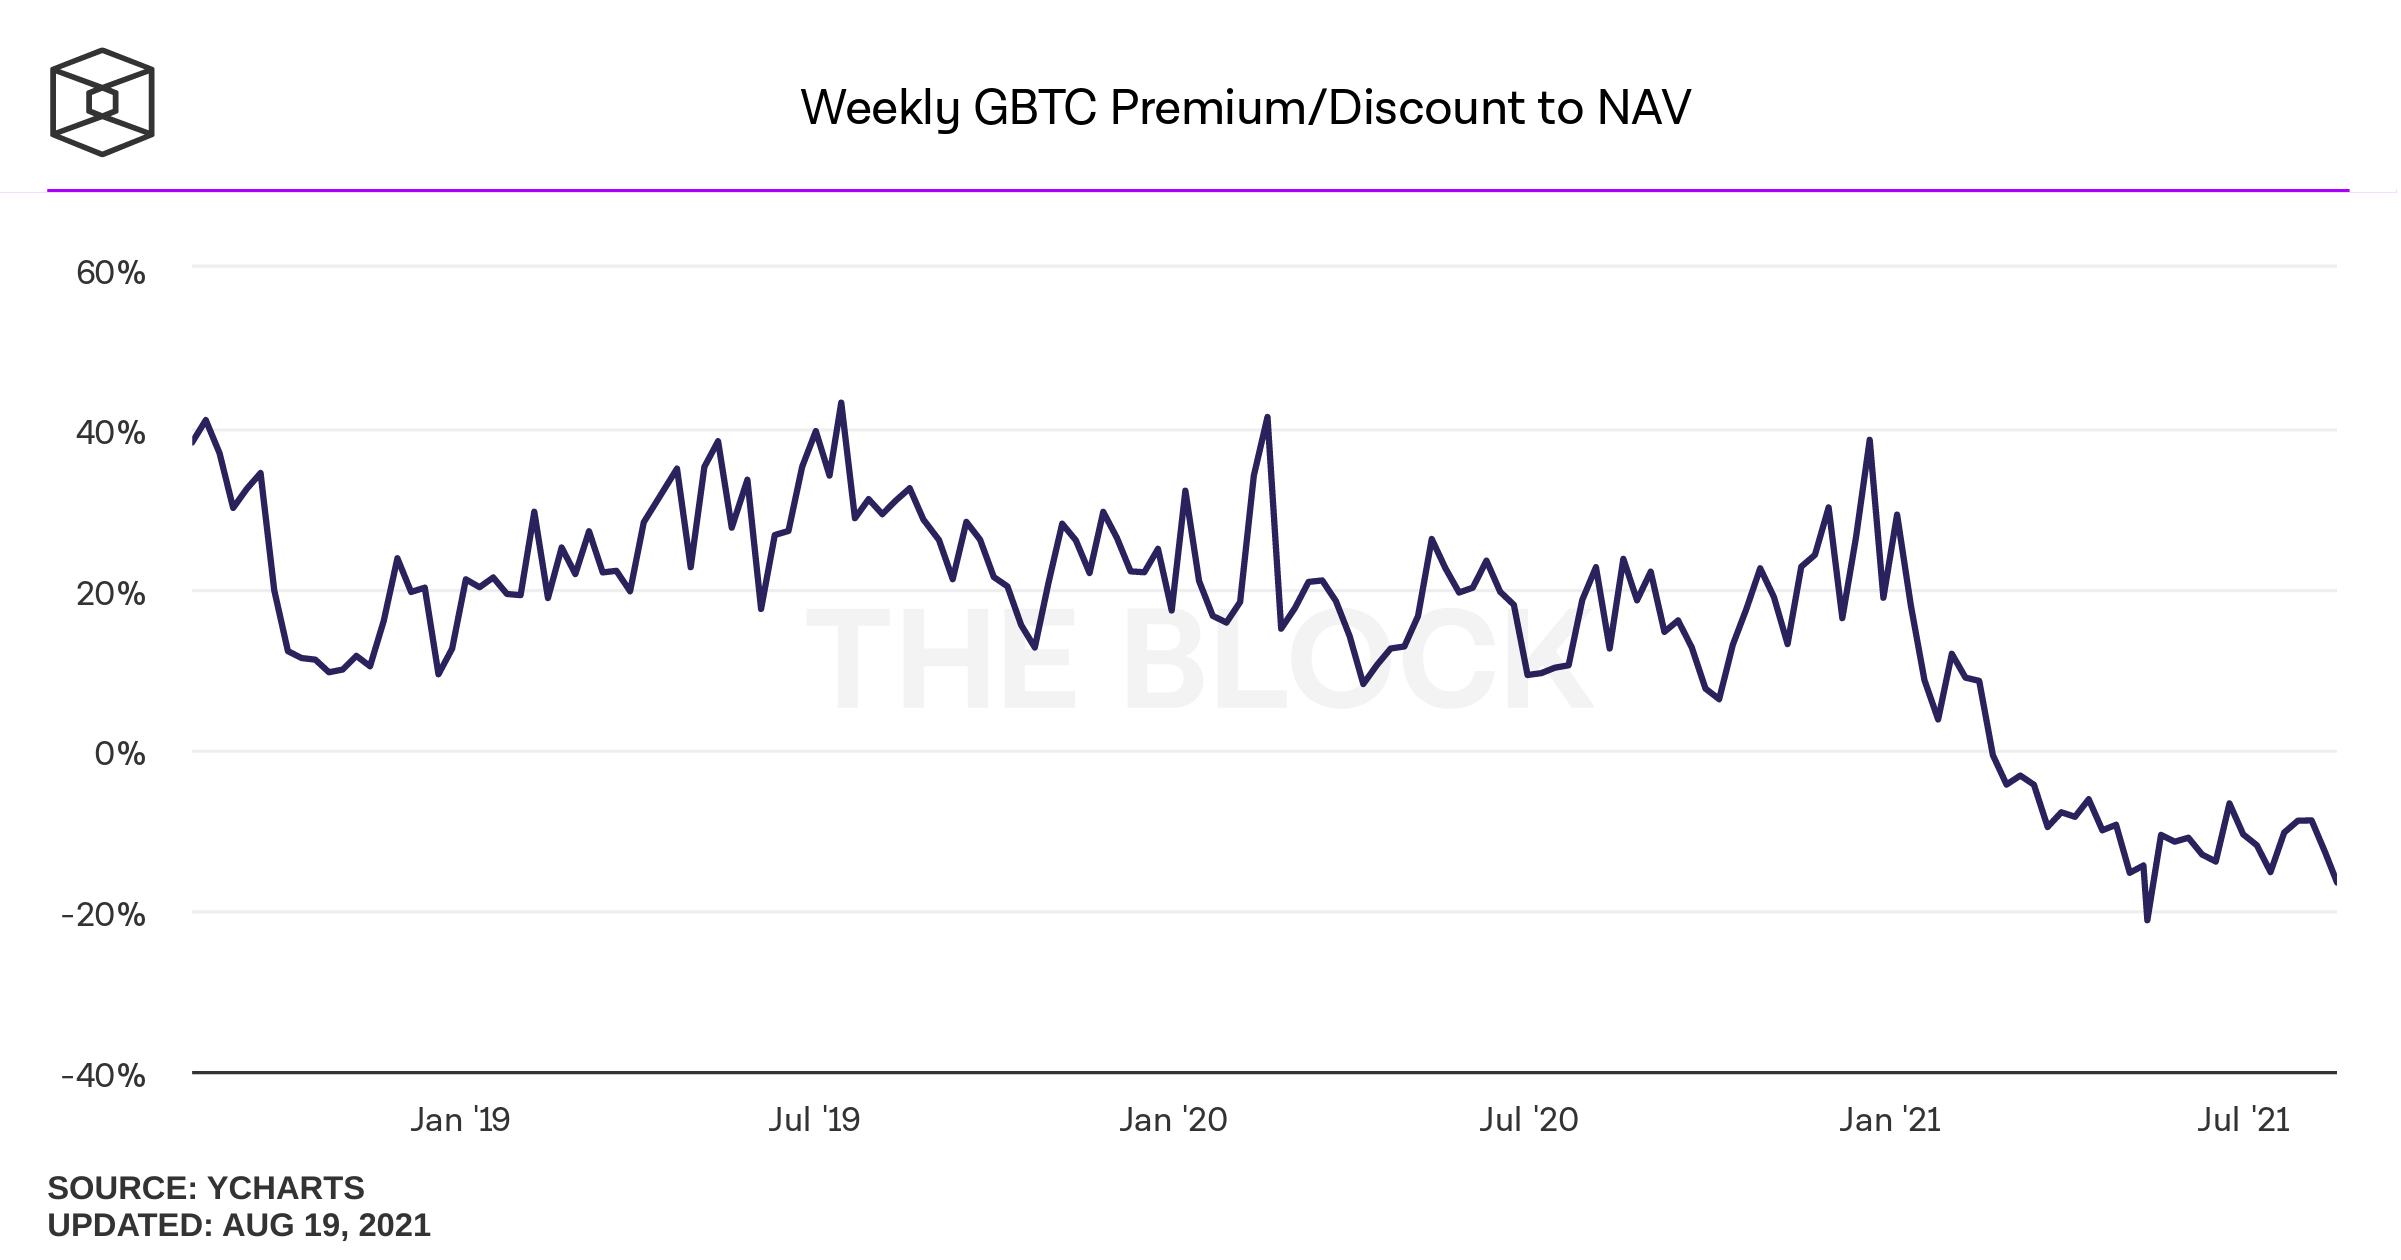 https://data.tbstat.com/dashboard-images/weekly-premium-of-gbtc.png